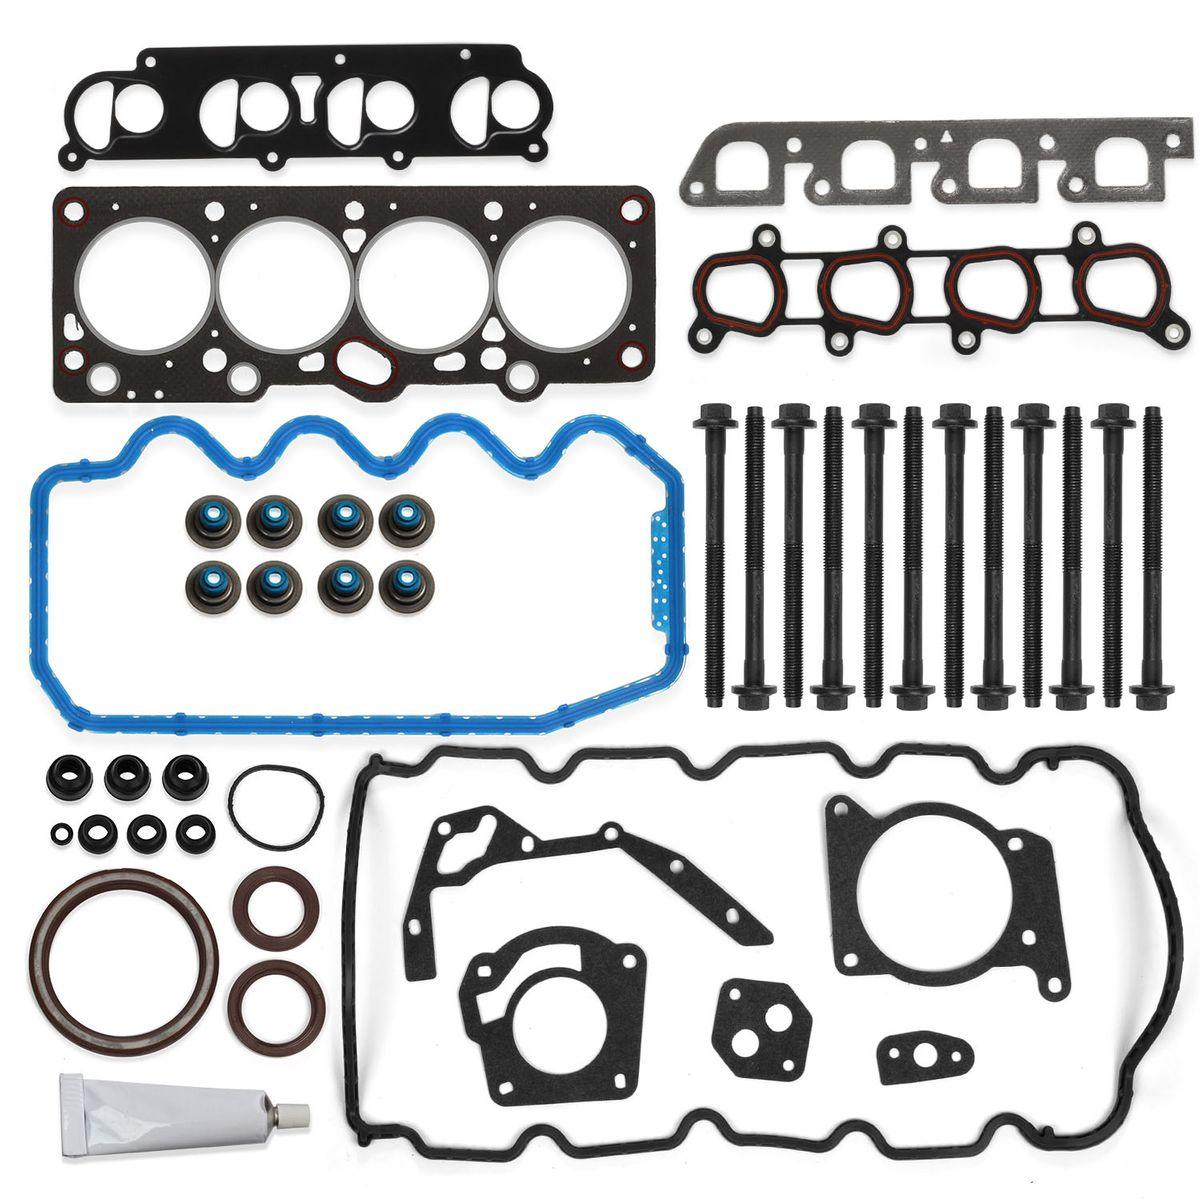 Engine Head Gasket Bolts Set Fits 2000-2004 Ford Focus